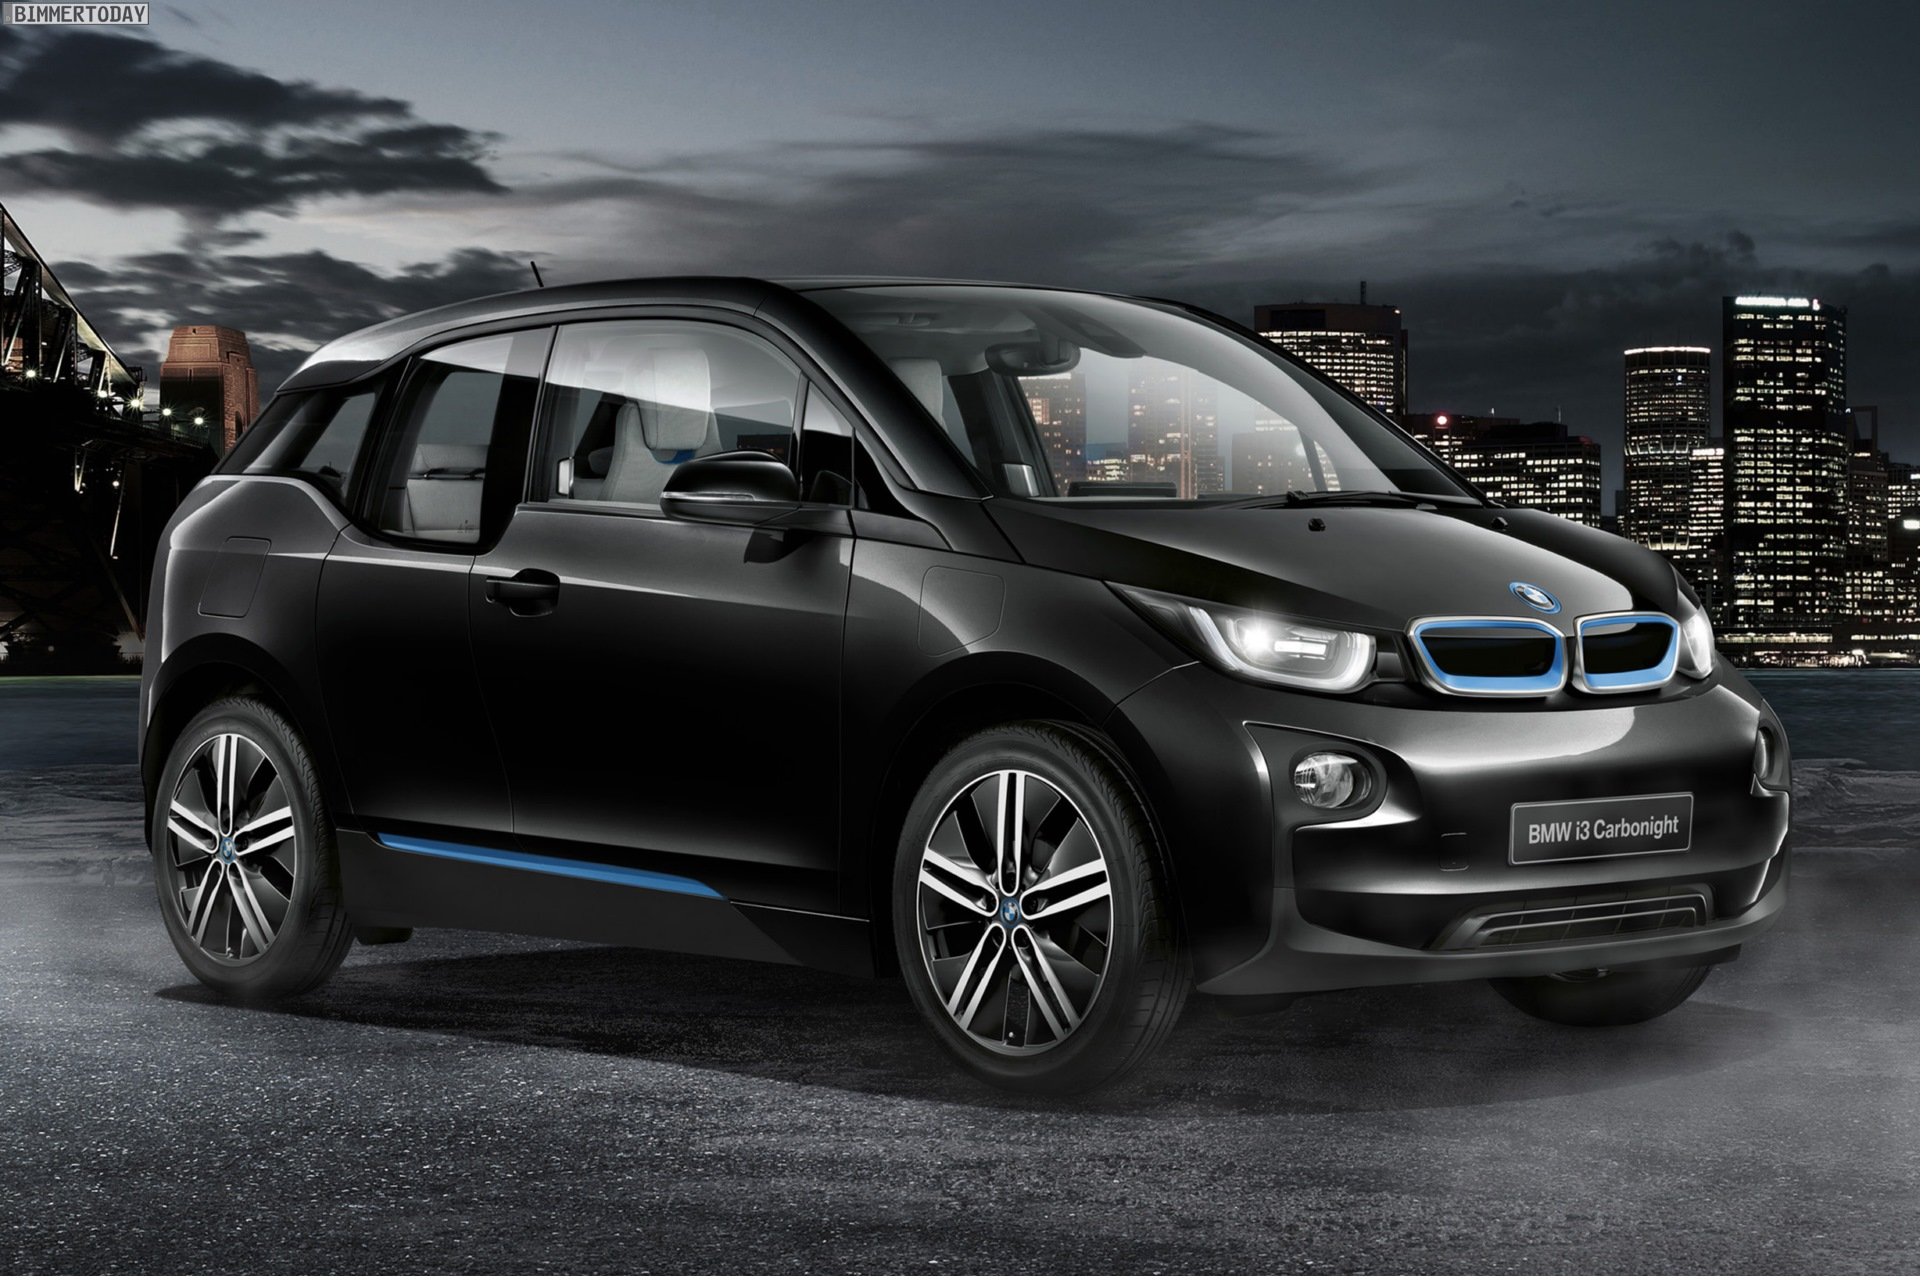 Bmw I3 Carbonight Zum 100 Sondermodell In Fluid Black